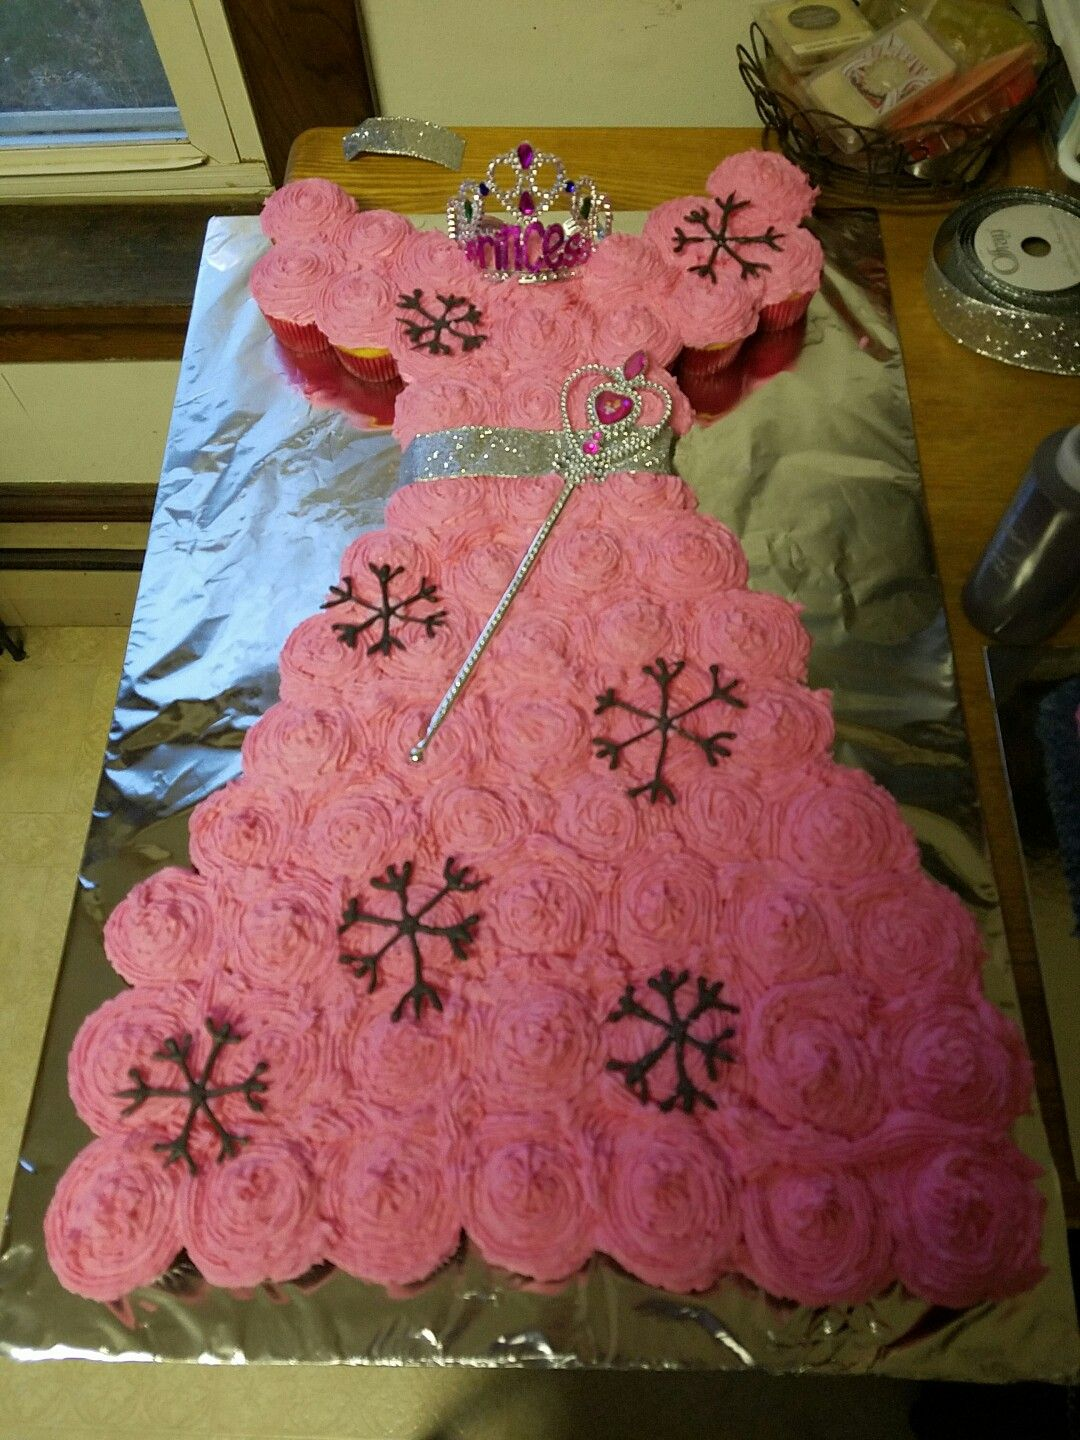 Snowflake pink princess cupcake cake for first birthday party